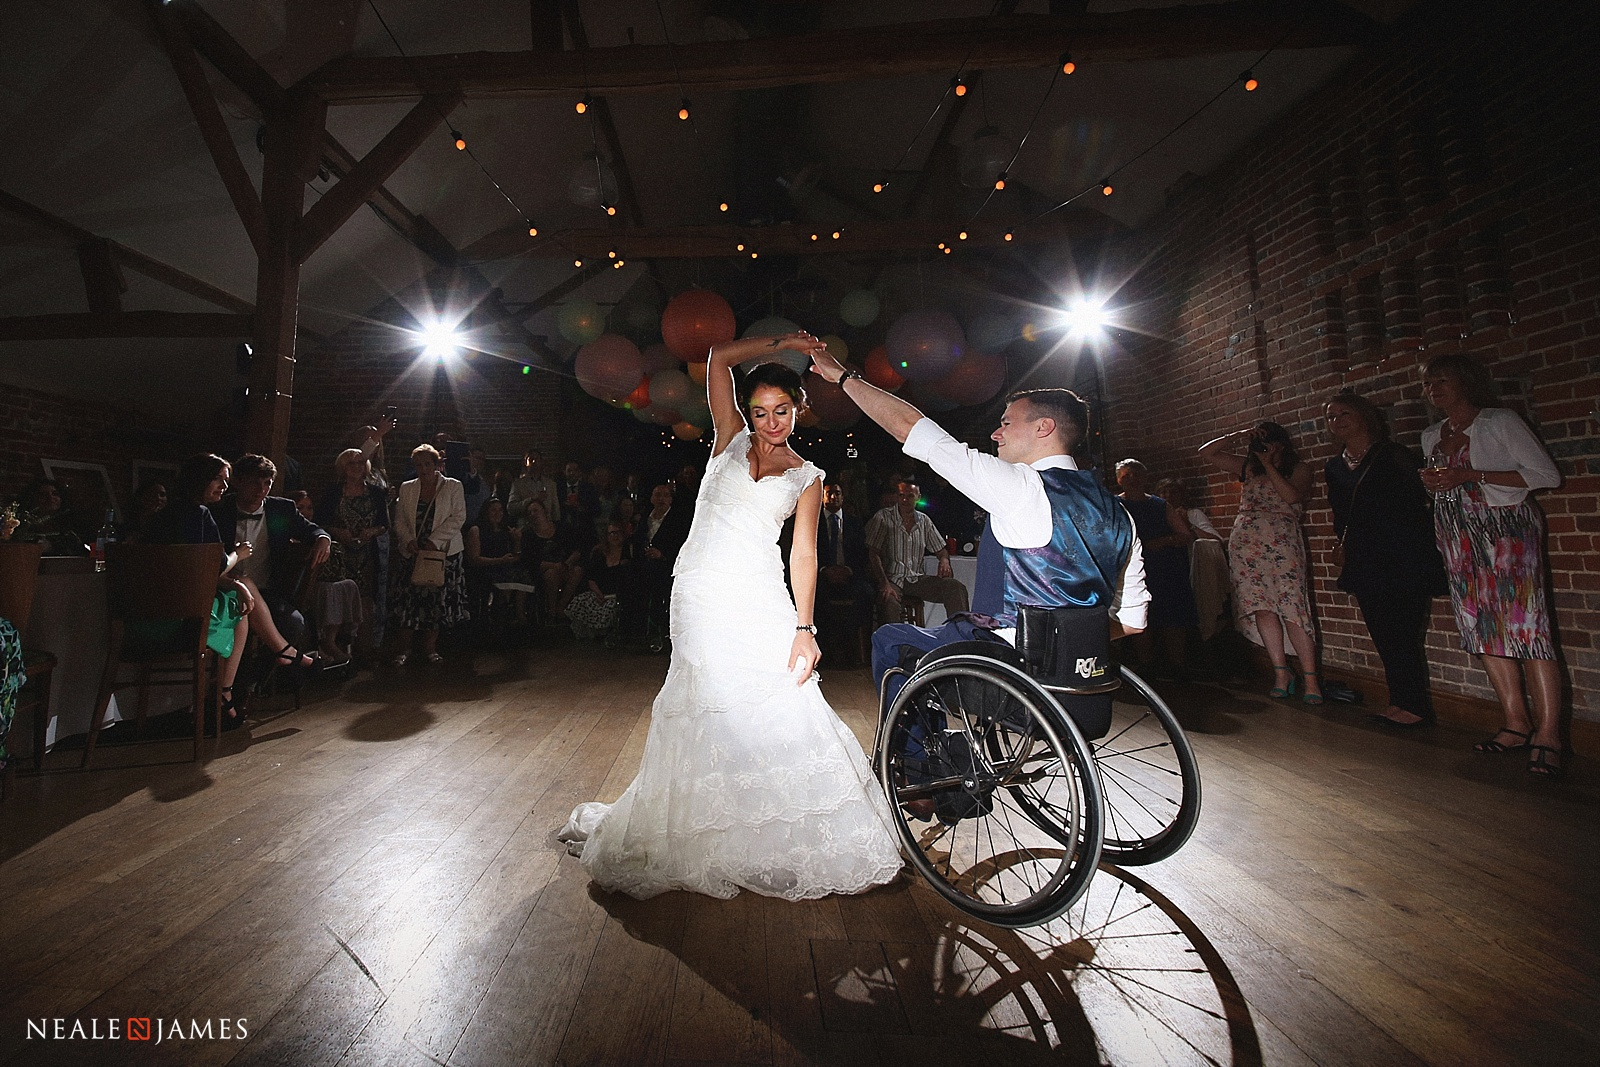 Colour picture of Matt Sealy and wife Shen dancing during their wedding at Wasing Park